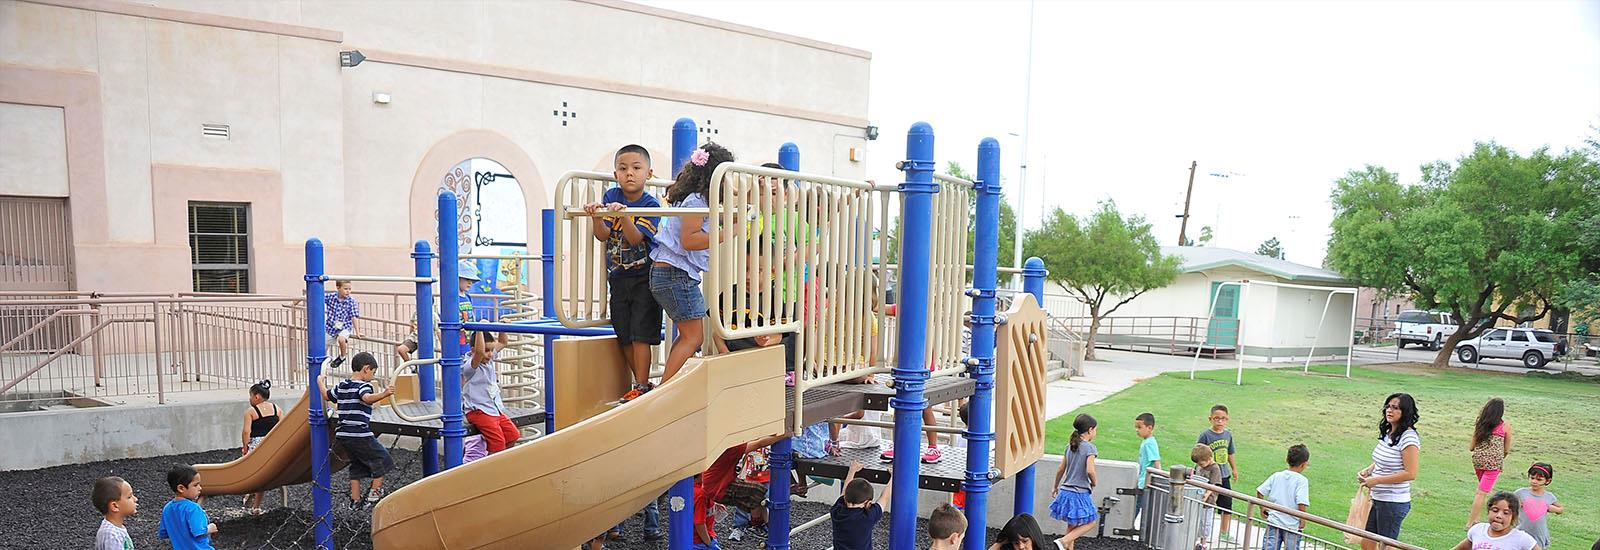 We have great play areas.